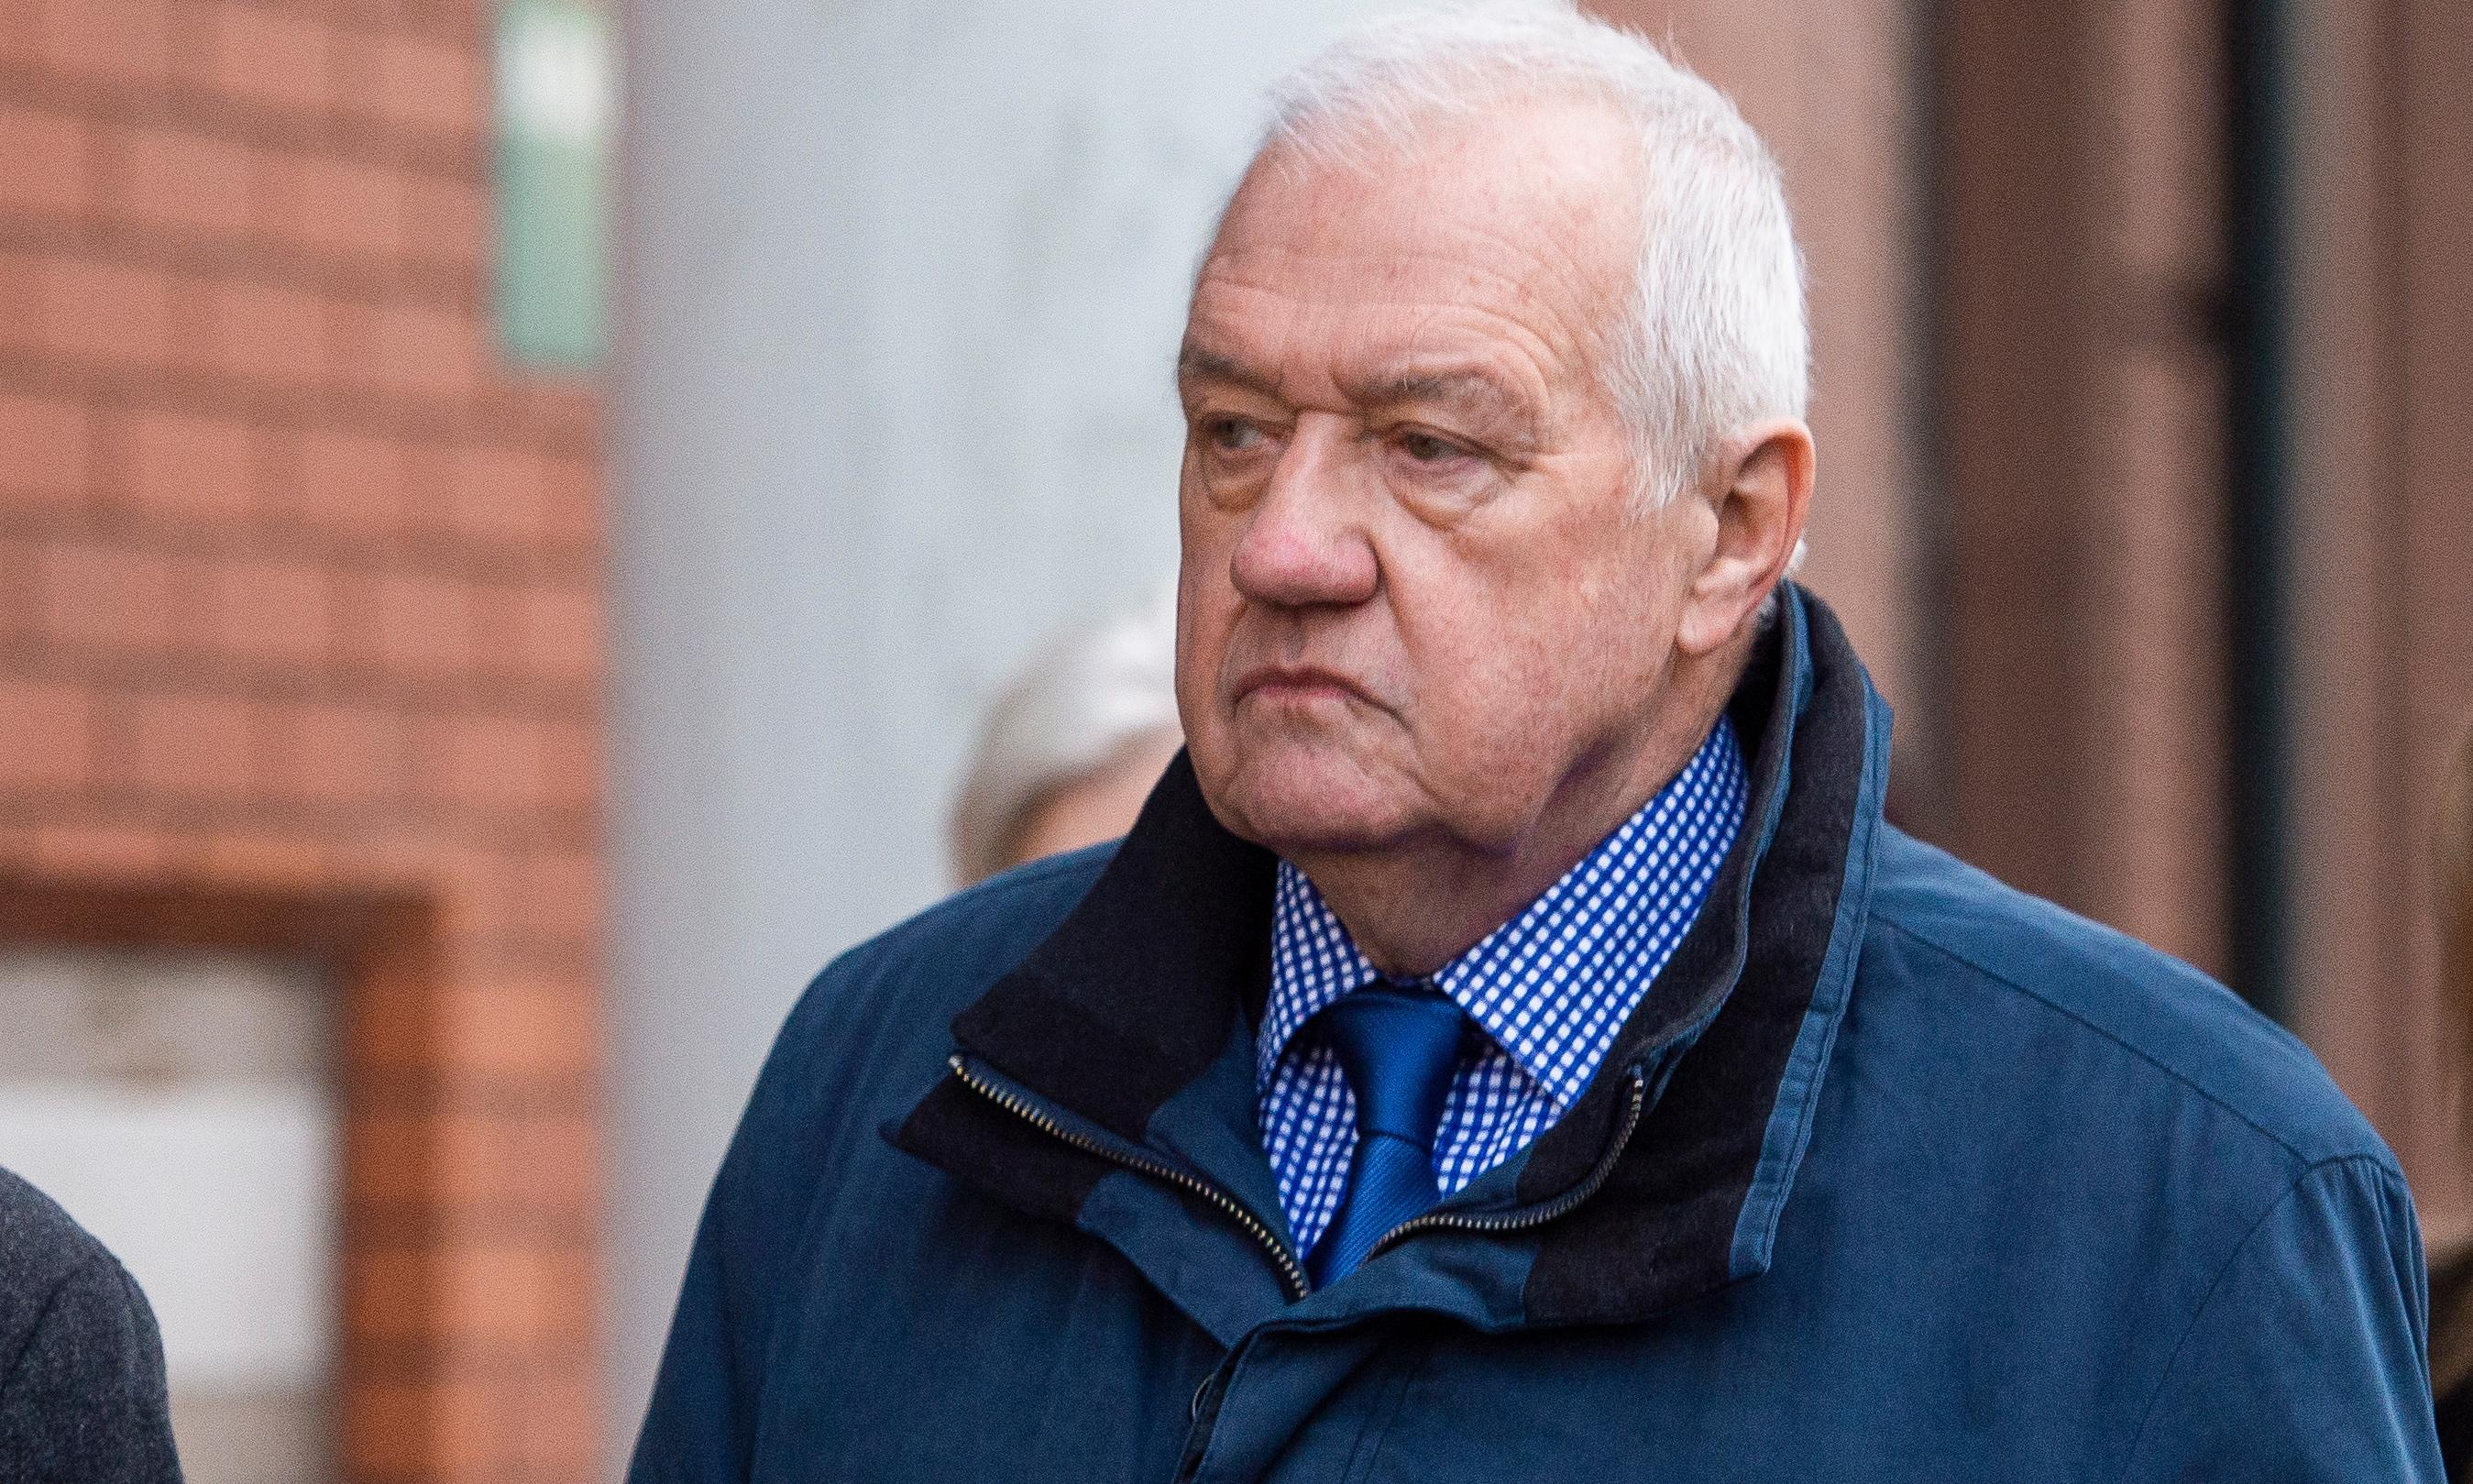 Hillsborough trial: 'officer did not discuss consequences of opening gate'